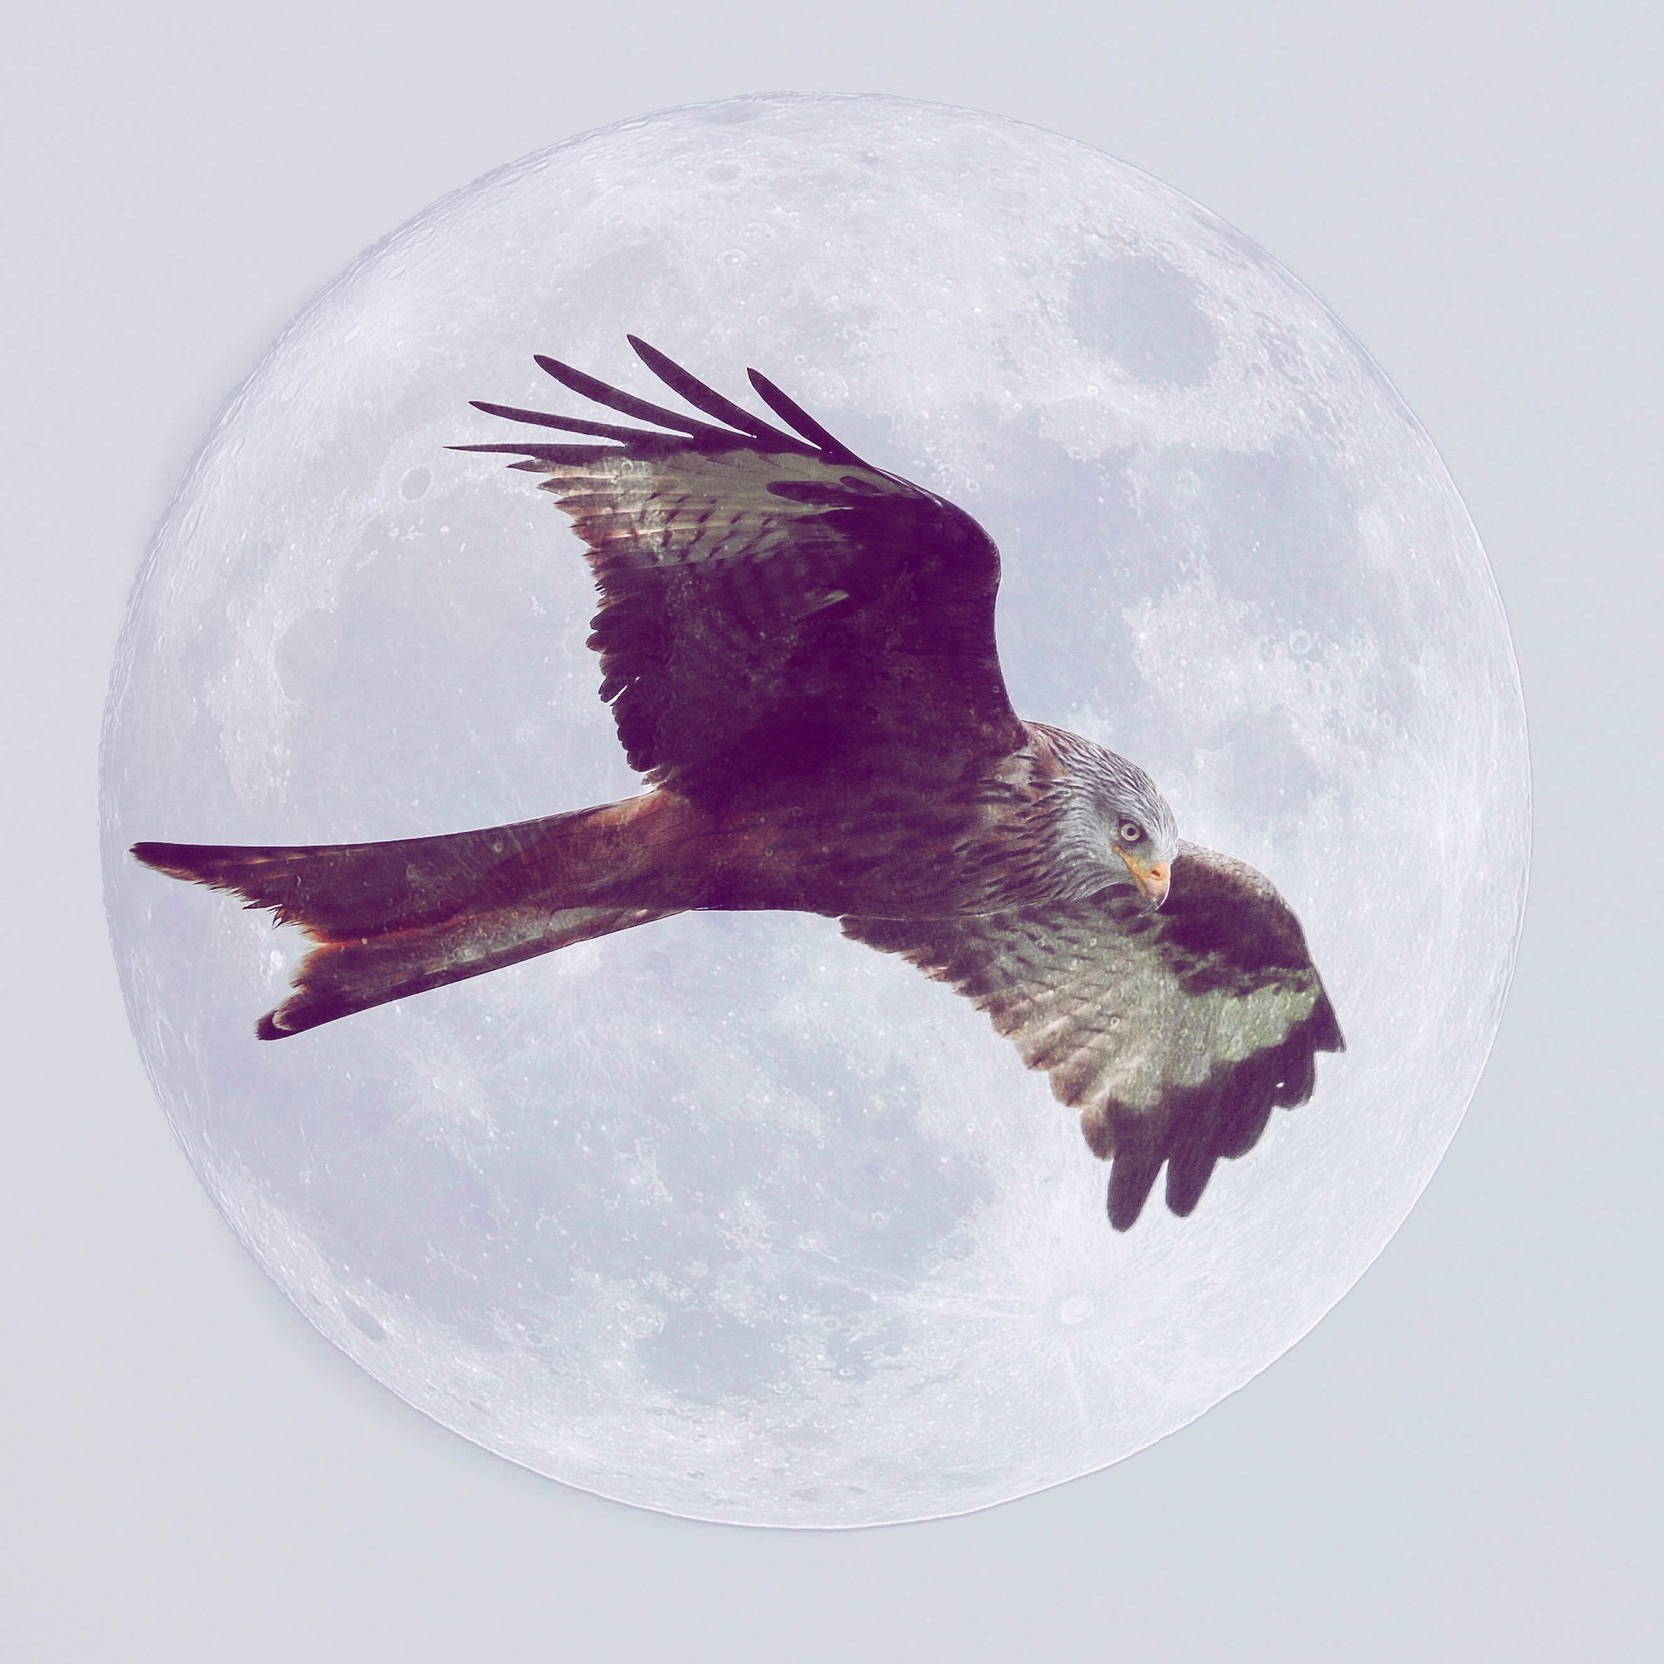 Liberation Moon - A lunar forecast for February 15 - March 17, 2018 by Susan Lipshutz featuring tips and practices for working with the energies of the month.